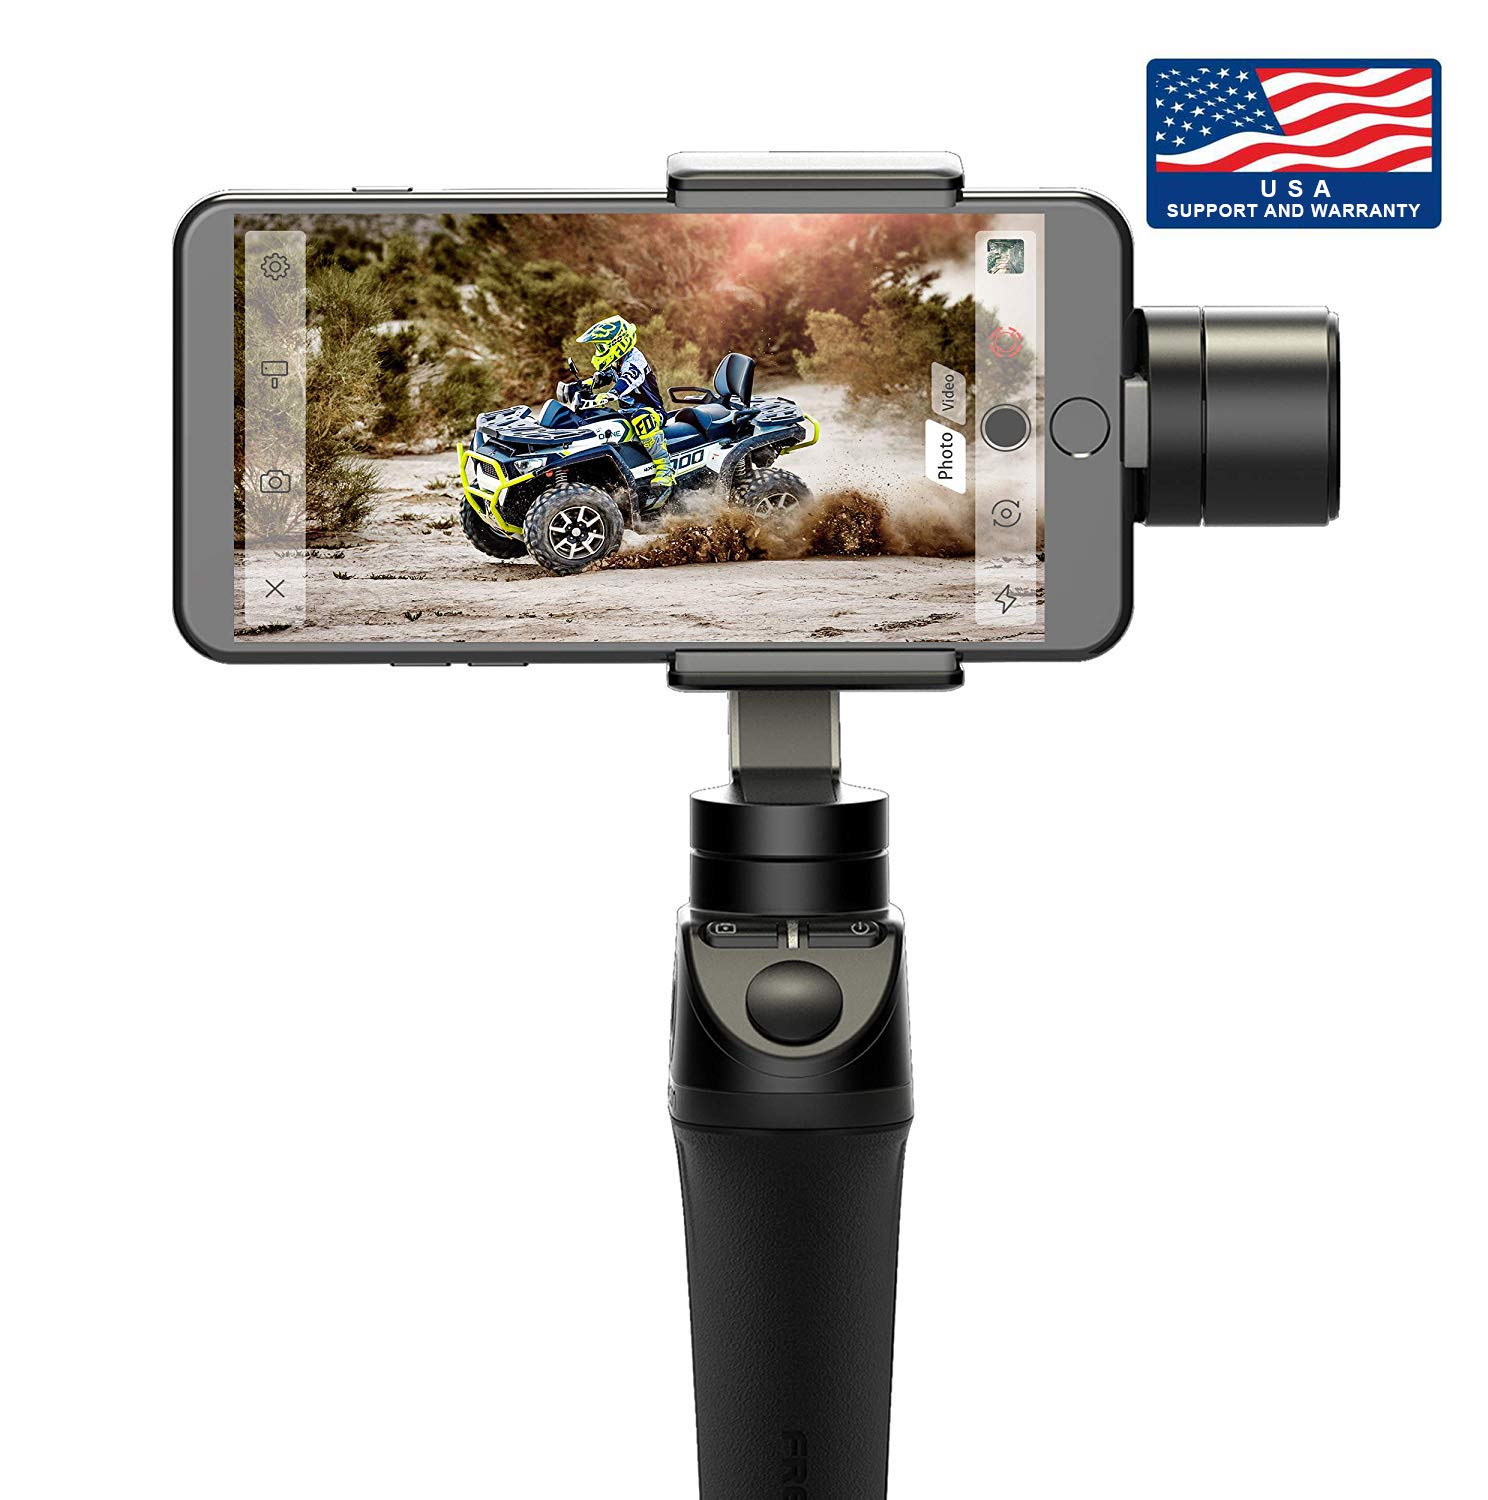 Freevision Vilta-M Pro 3-Axis Handheld Stabilizer Gimbal for iPhone Premium Stability Performance Wireless Charging Double Wheel Samsung Mark A//B Focus Point Setting